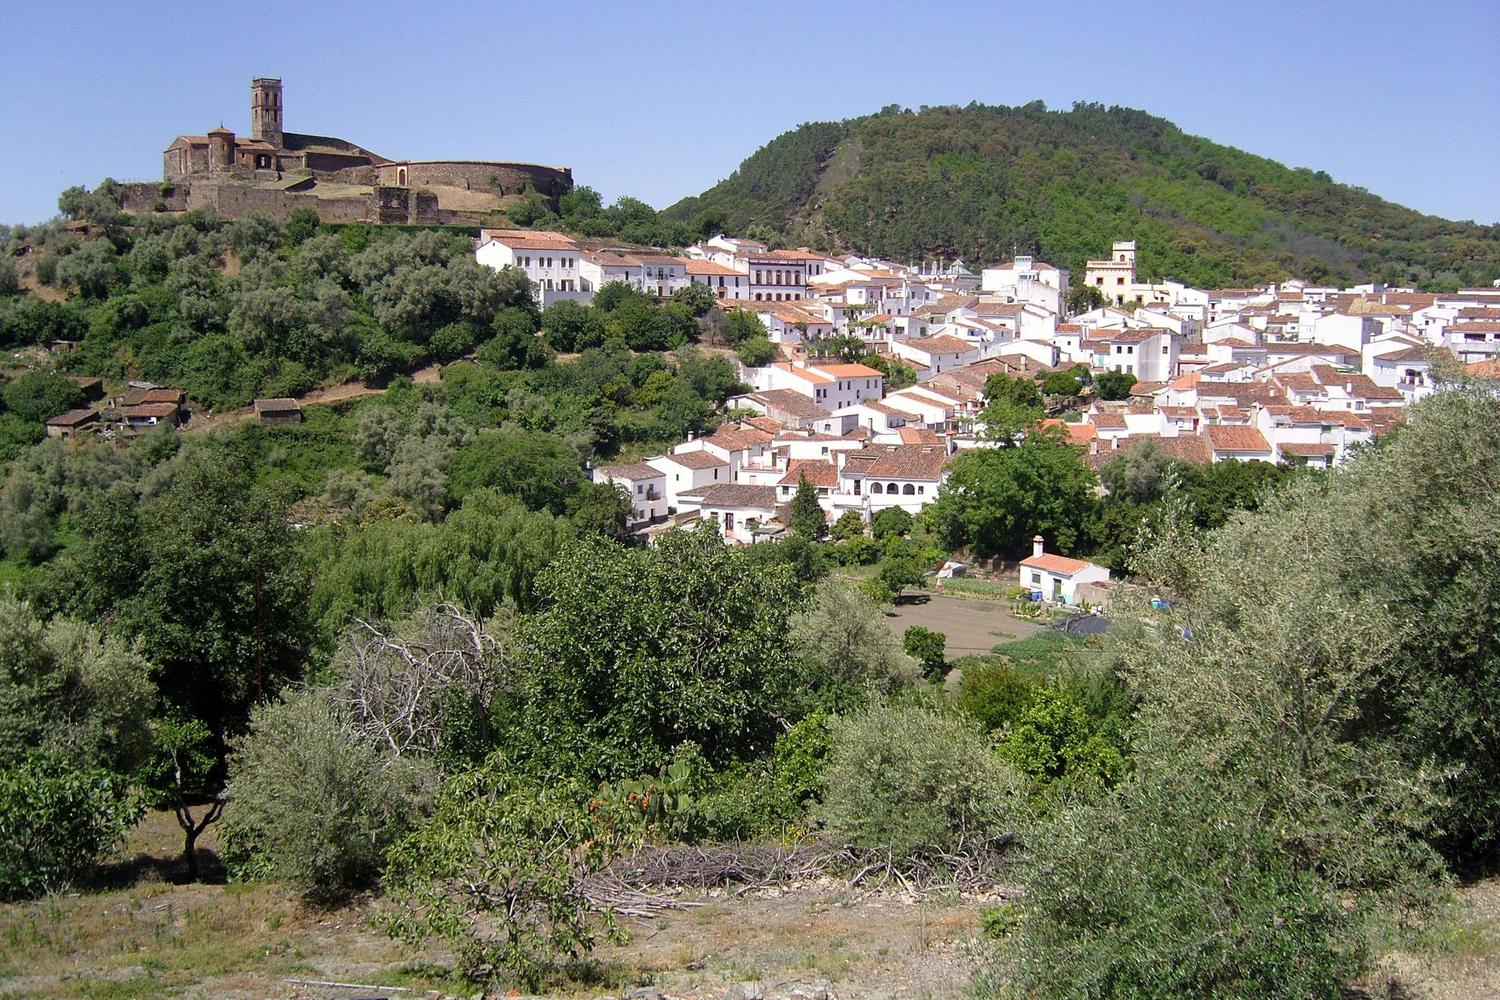 Almonaster with its church, white washed houses and bull ring